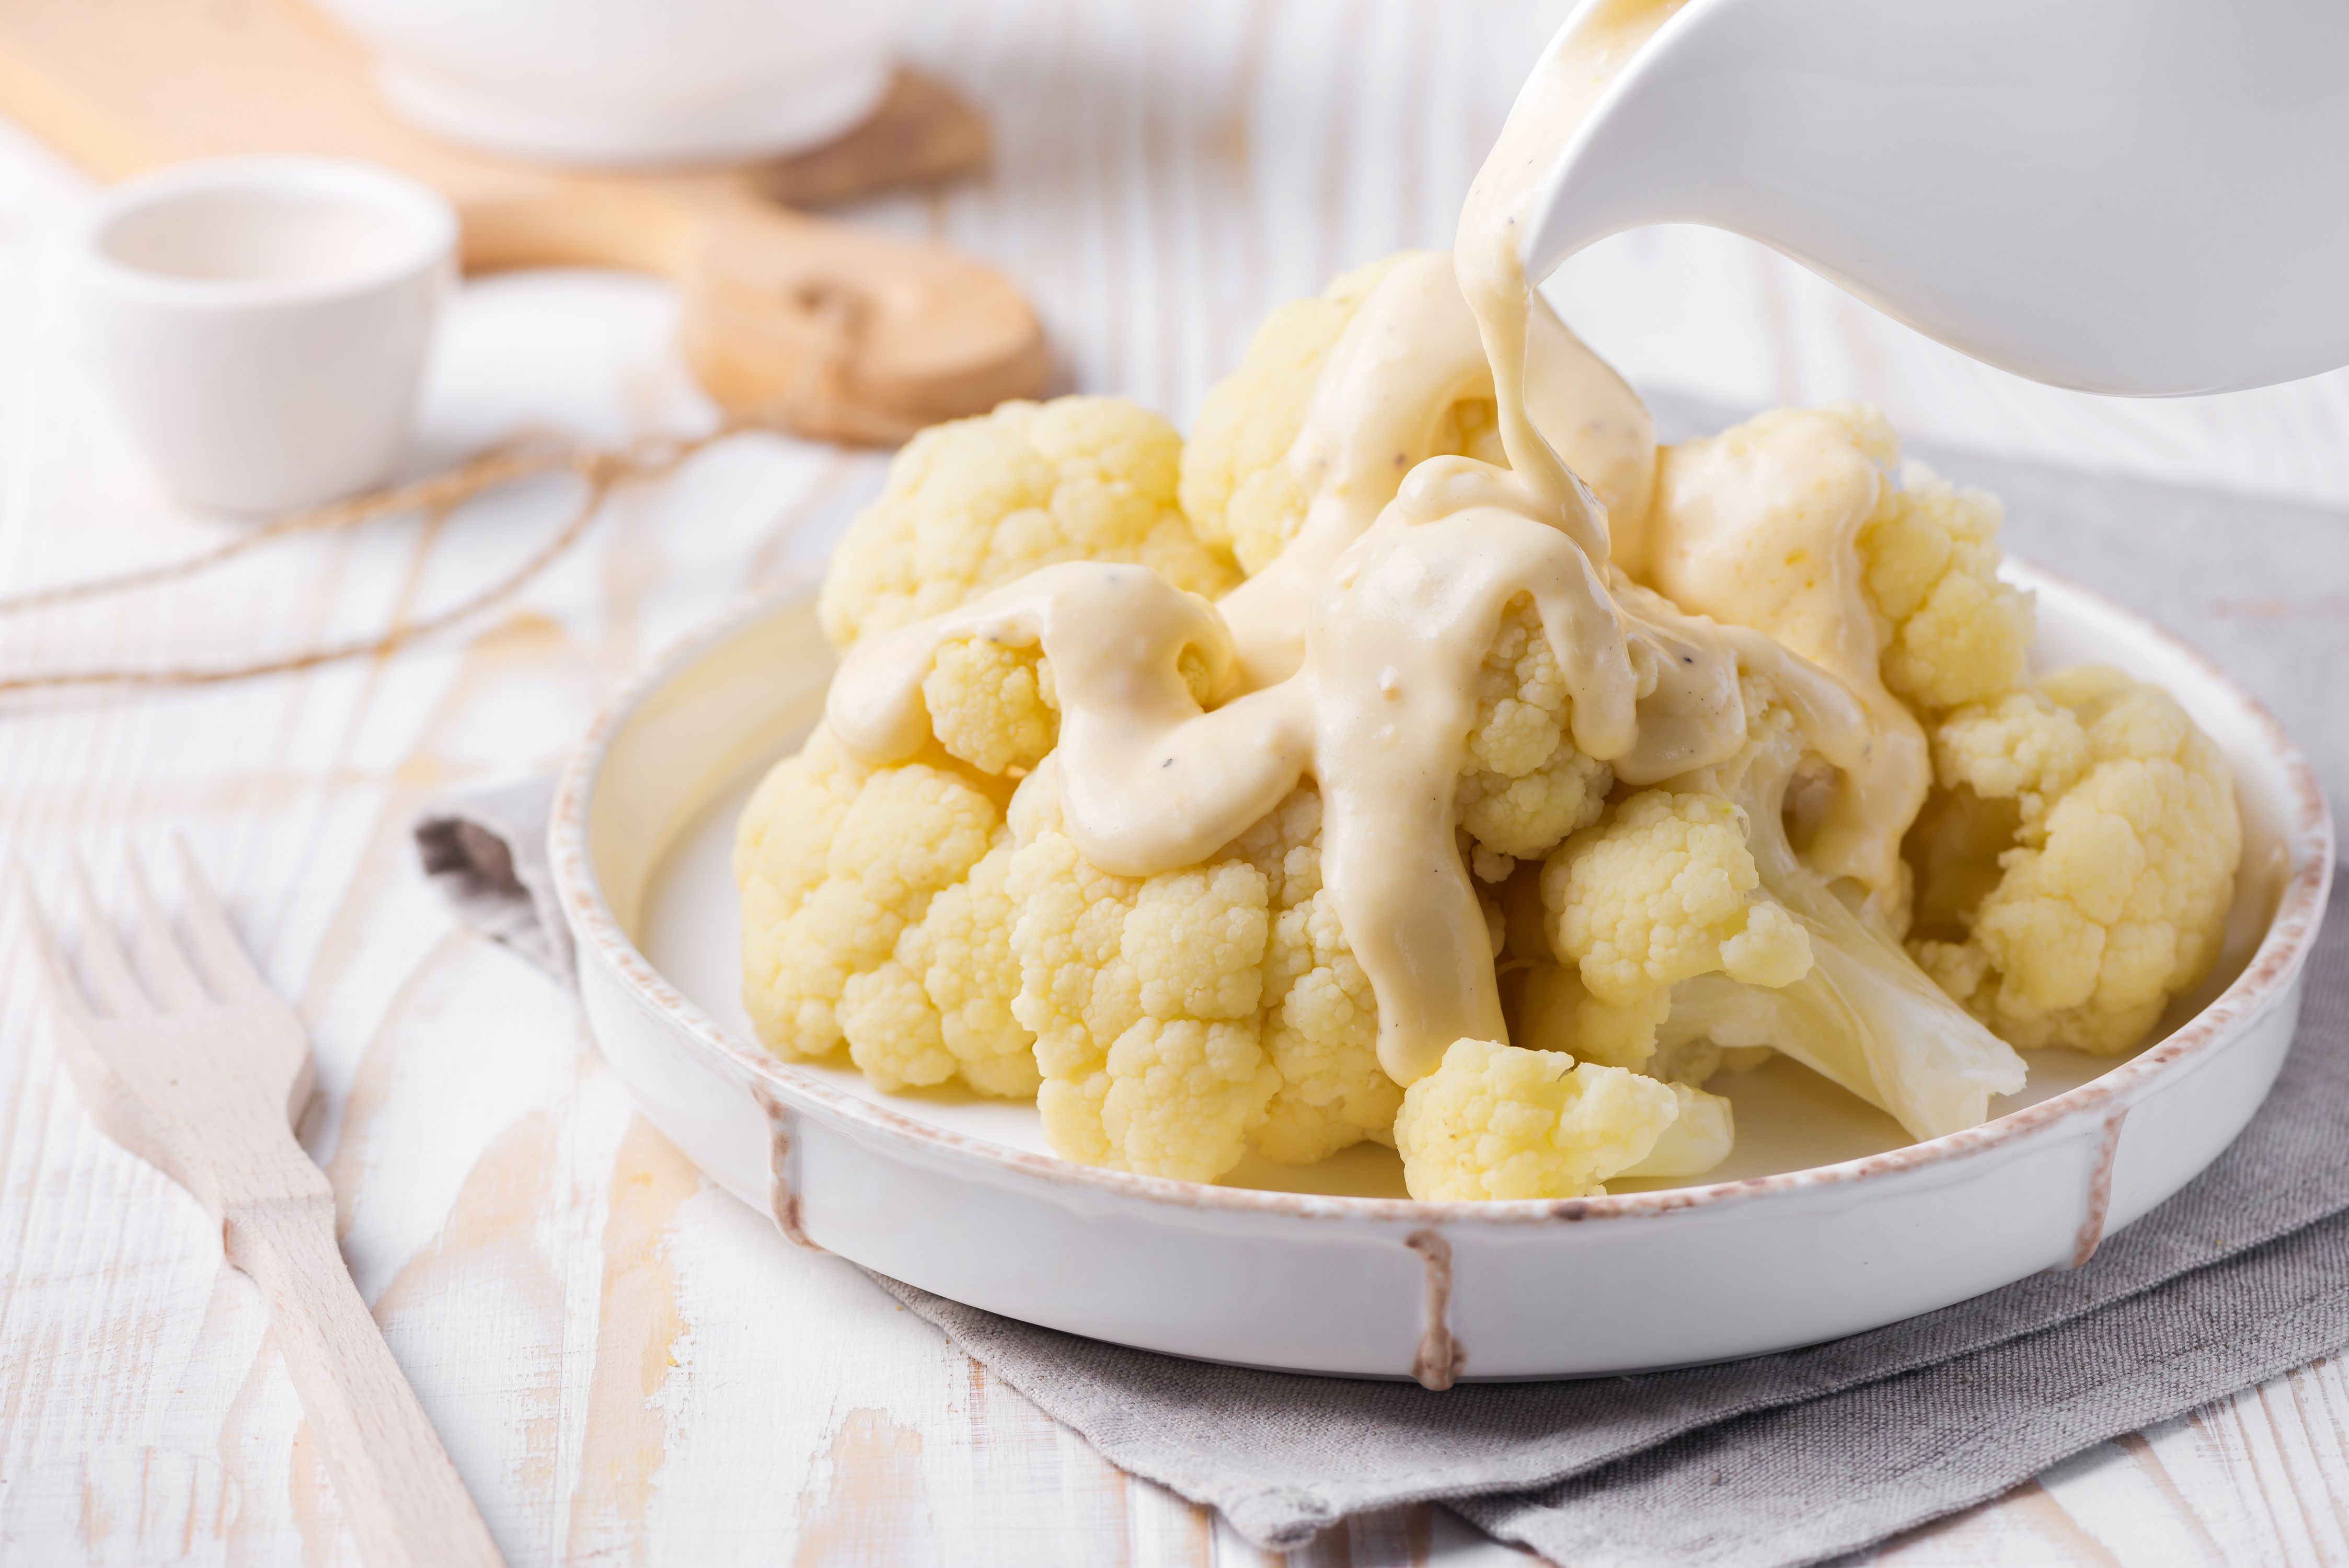 Cauliflower florets and cheese sauce in a serving dish